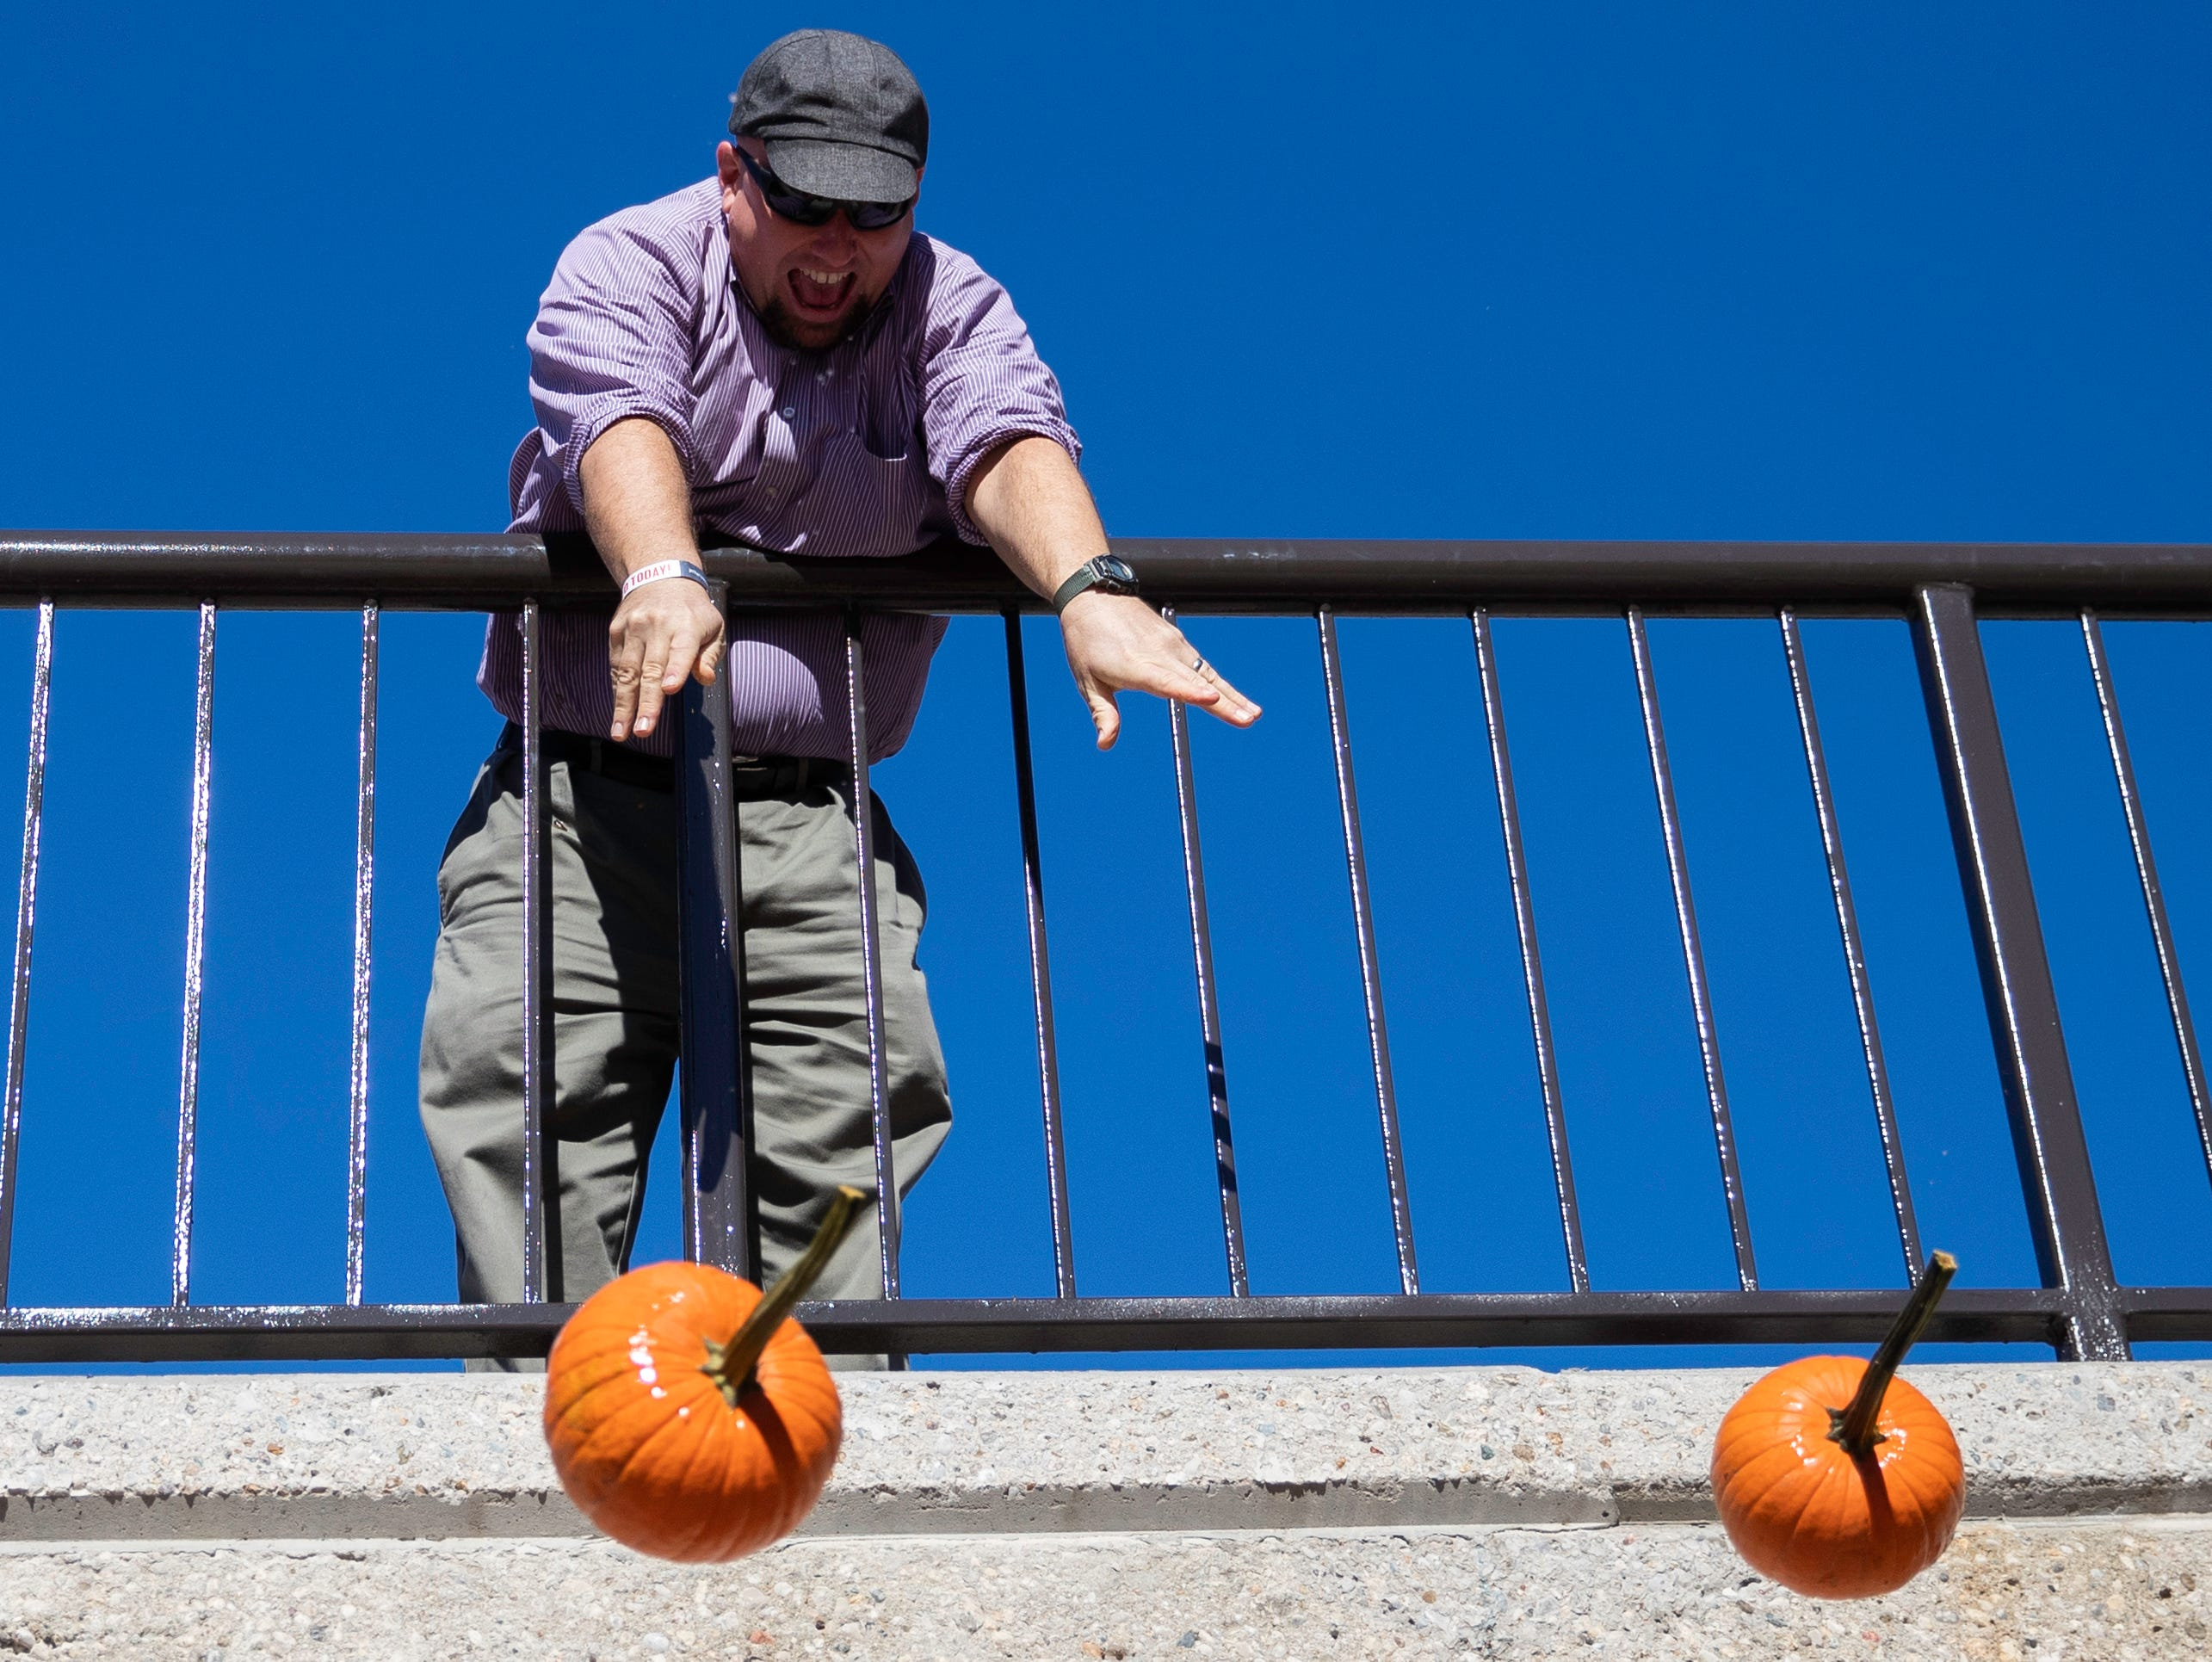 Justin Mog hurled pumpkins off the SAC Ramp, Tuesday, Nov. 6, 2018 in Louisville Ky. The annual Pumpkin Smash in collaboration with the Office of Health Promotion, benefits UofL's Community Composting Project with all smashed pumpkins going into the compost to feed various community gardens, on and off UofL's campus.